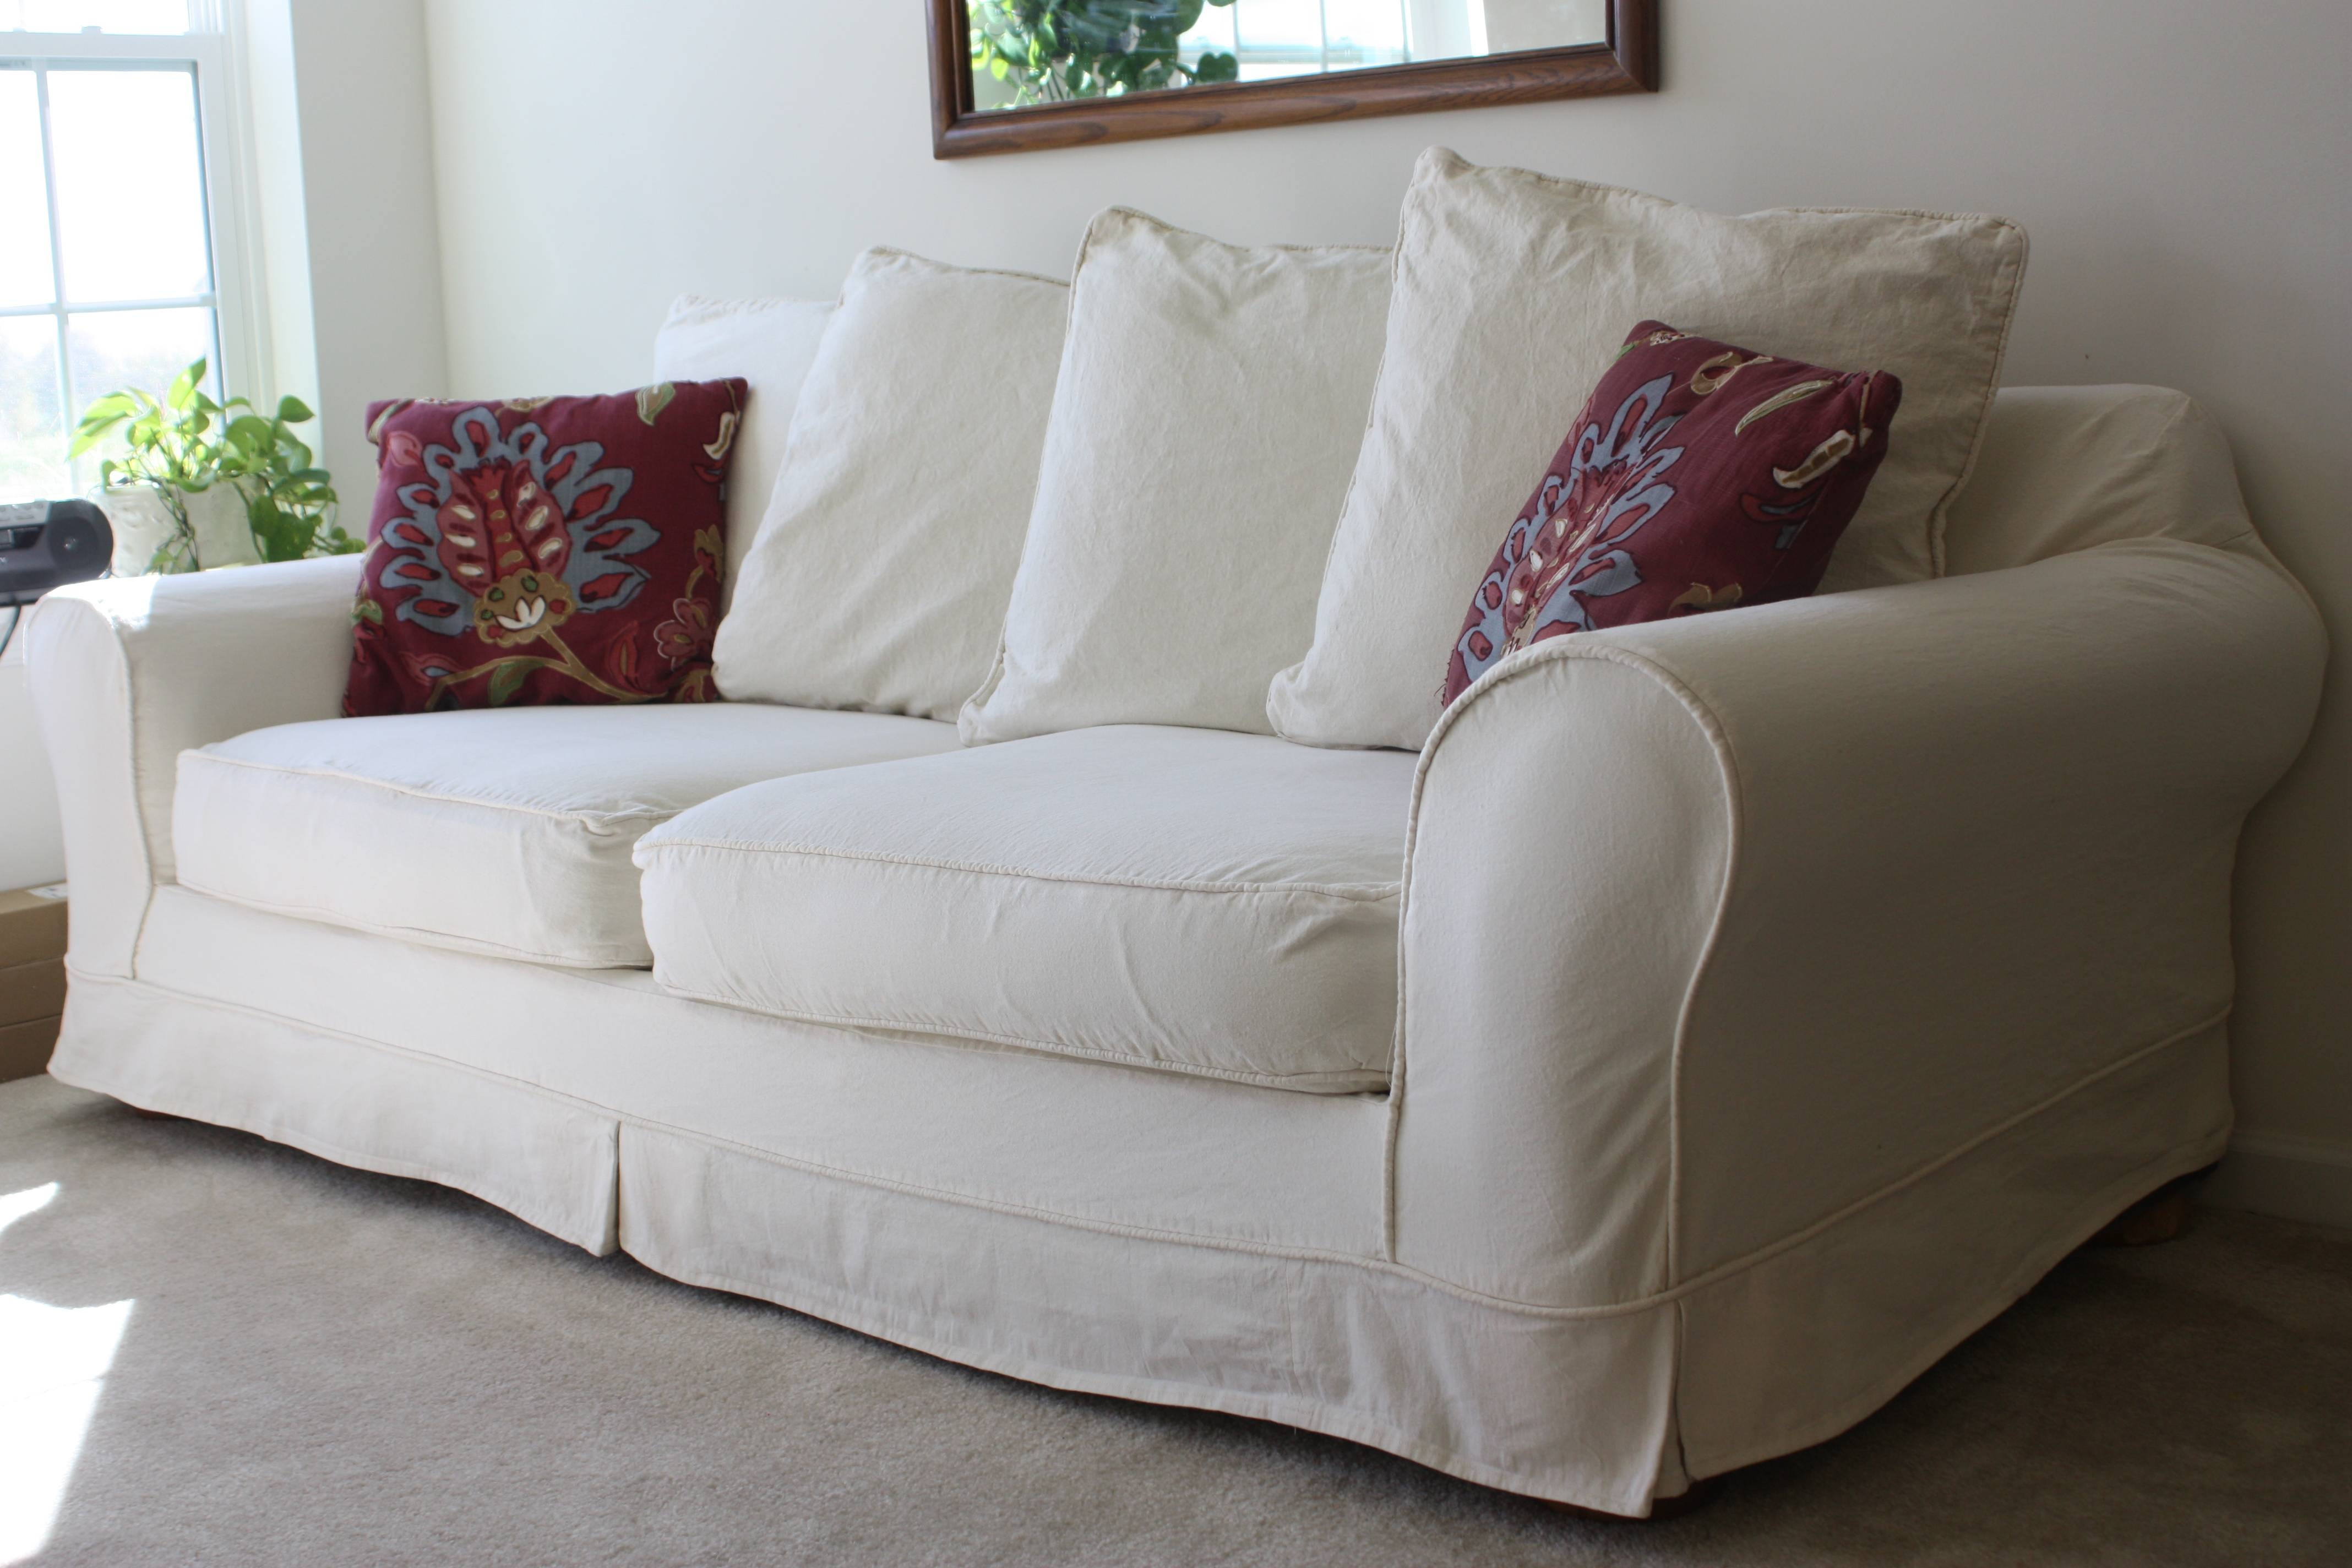 Chair & Sofa: Usual Slipcovered Sofas For Classic Sofa Idea within Shabby Chic Sofa Slipcovers (Image 3 of 15)